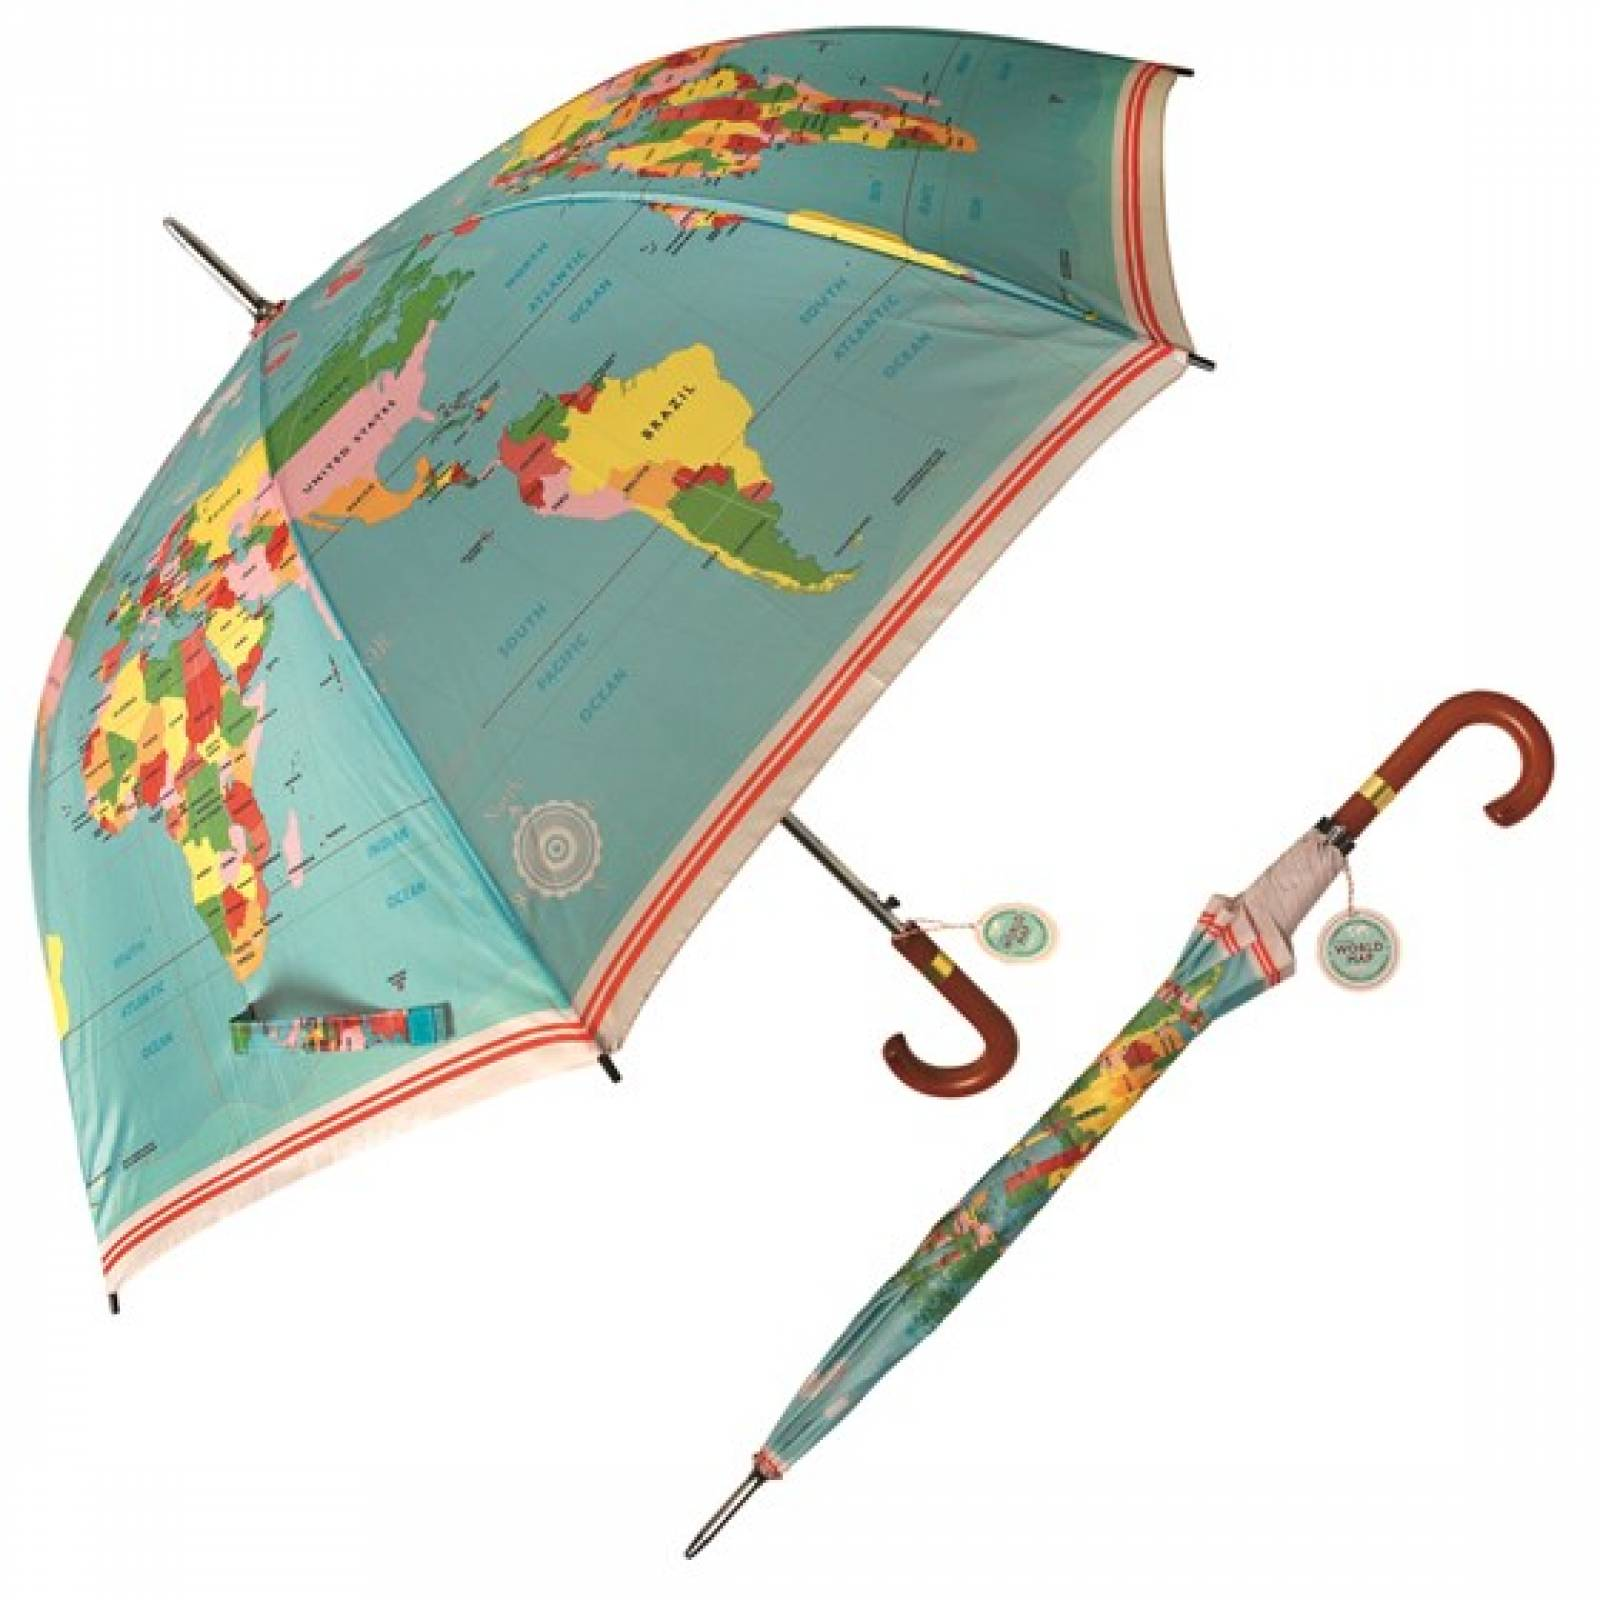 Vintage World Map - Adult Umbrella 3+